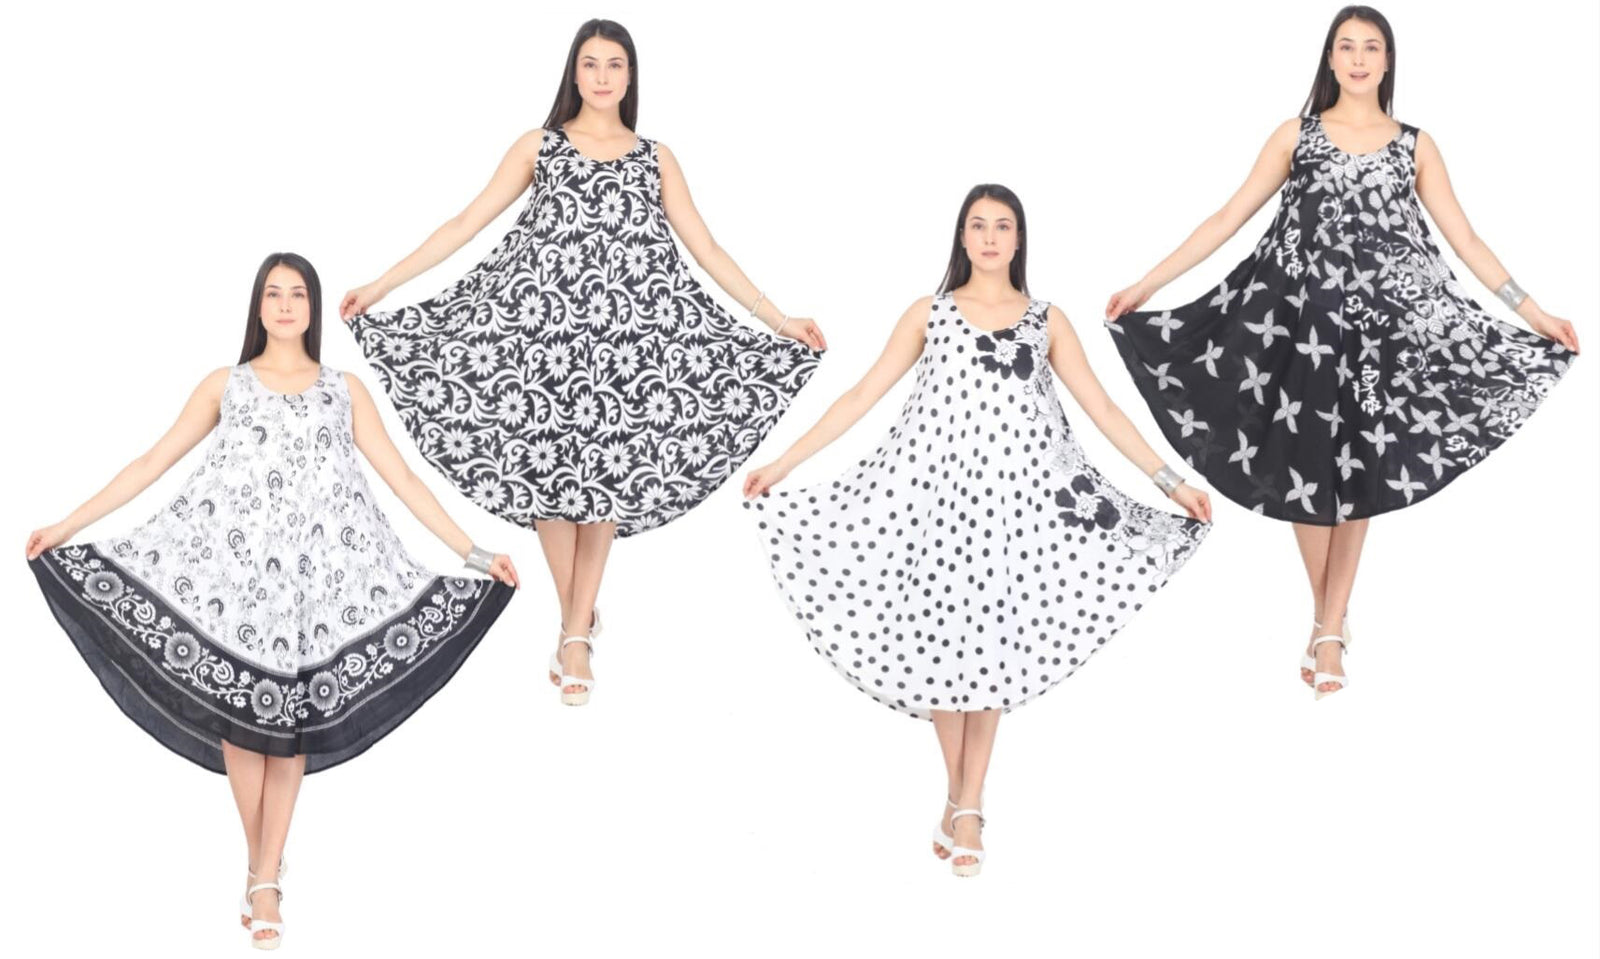 Wholesale Clothing Dresses SL CHALL B/W ASST 12/48/CASE (1X-3X) NWP3x